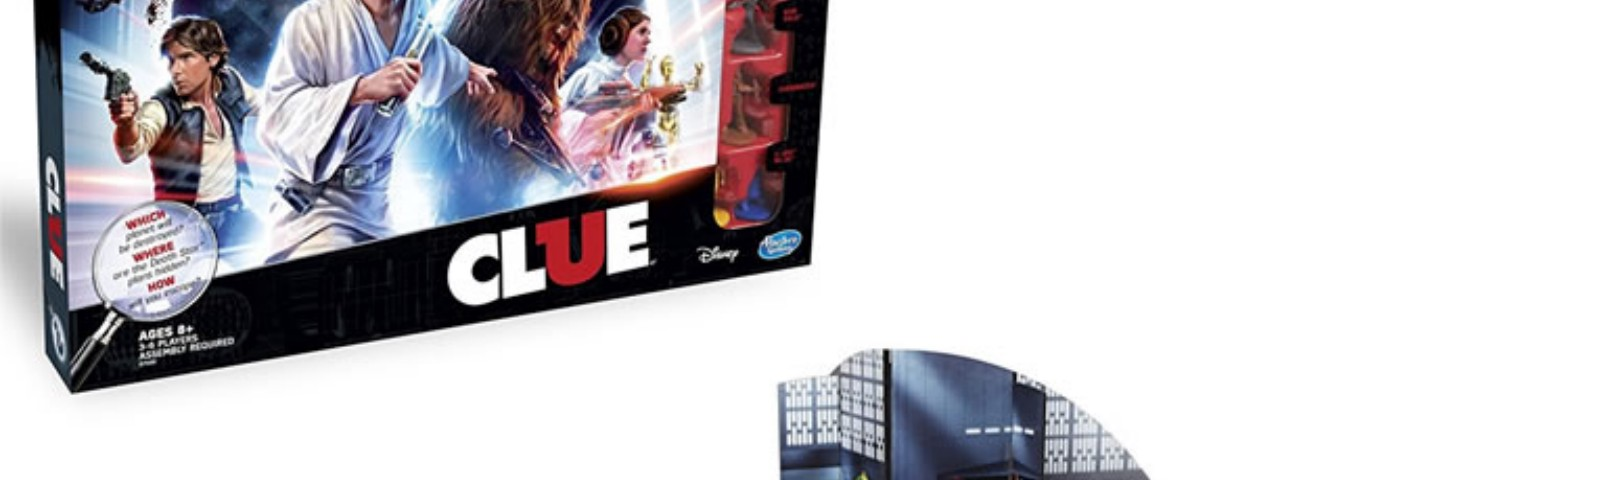 clue-game-star-wars-edition-2